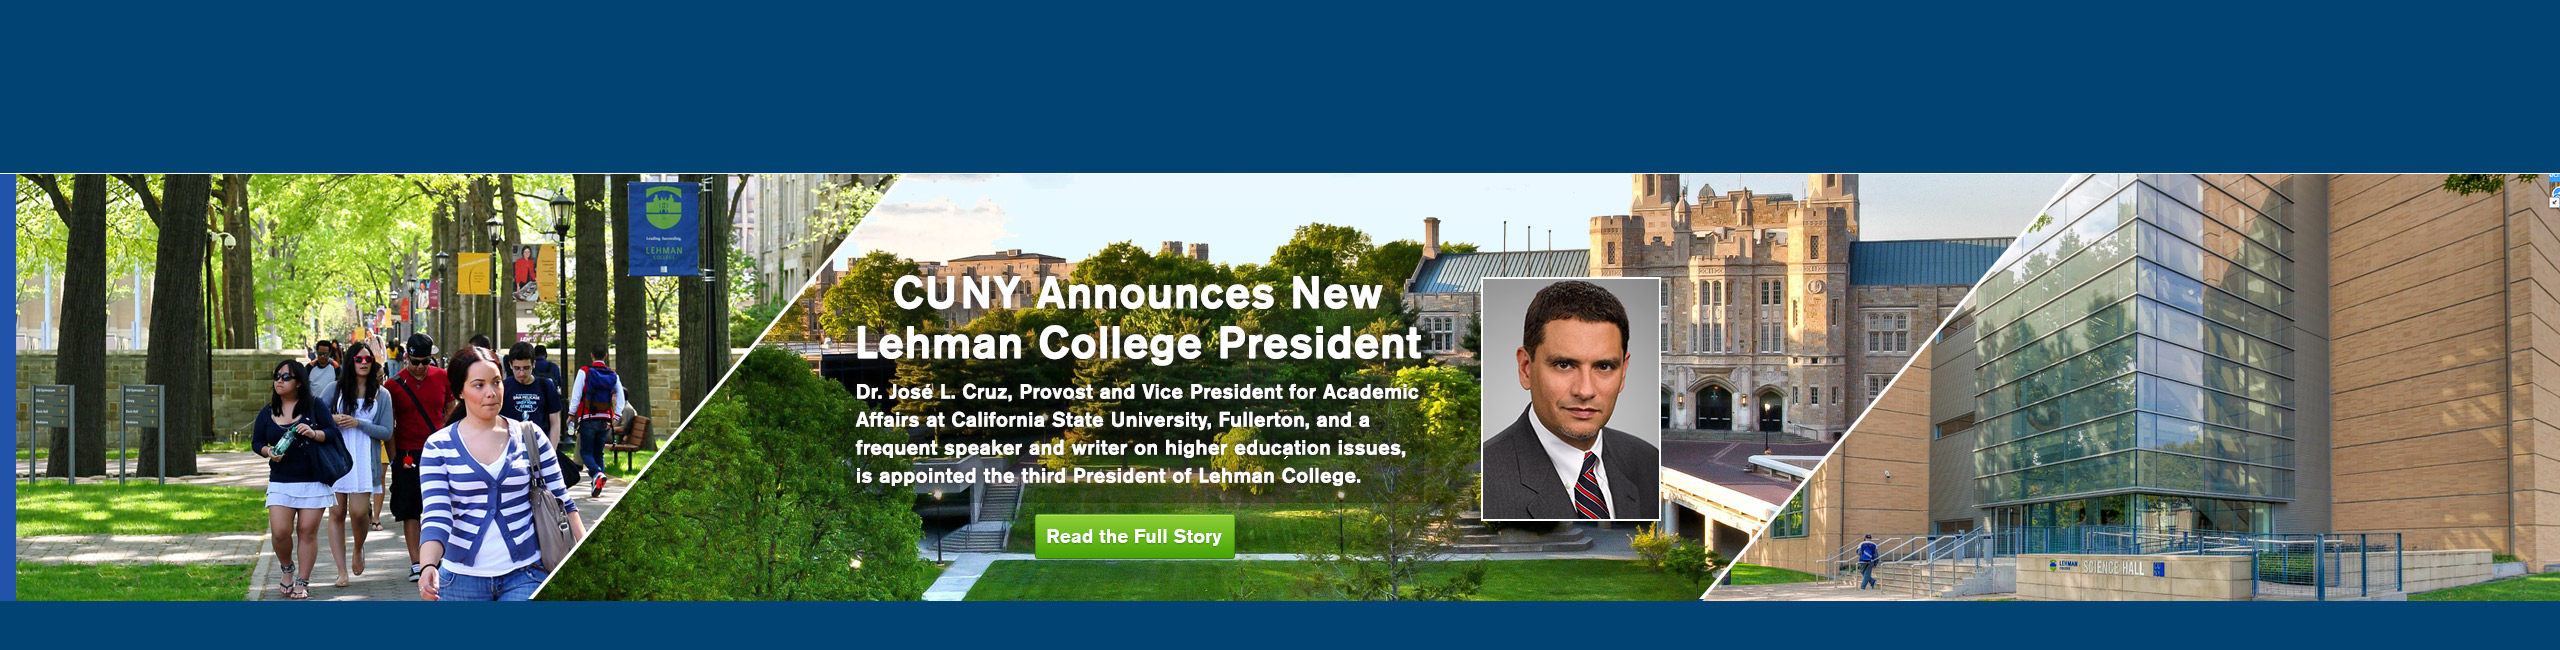 The Board of Trustees of The City University of New York today appointed Dr. José L. Cruz, Provost and Vice President for Academic Affairs at California State University, Fullerton, and a frequent speaker and writer on higher education issues, as the third president of Herbert H. Lehman College in the Bronx.